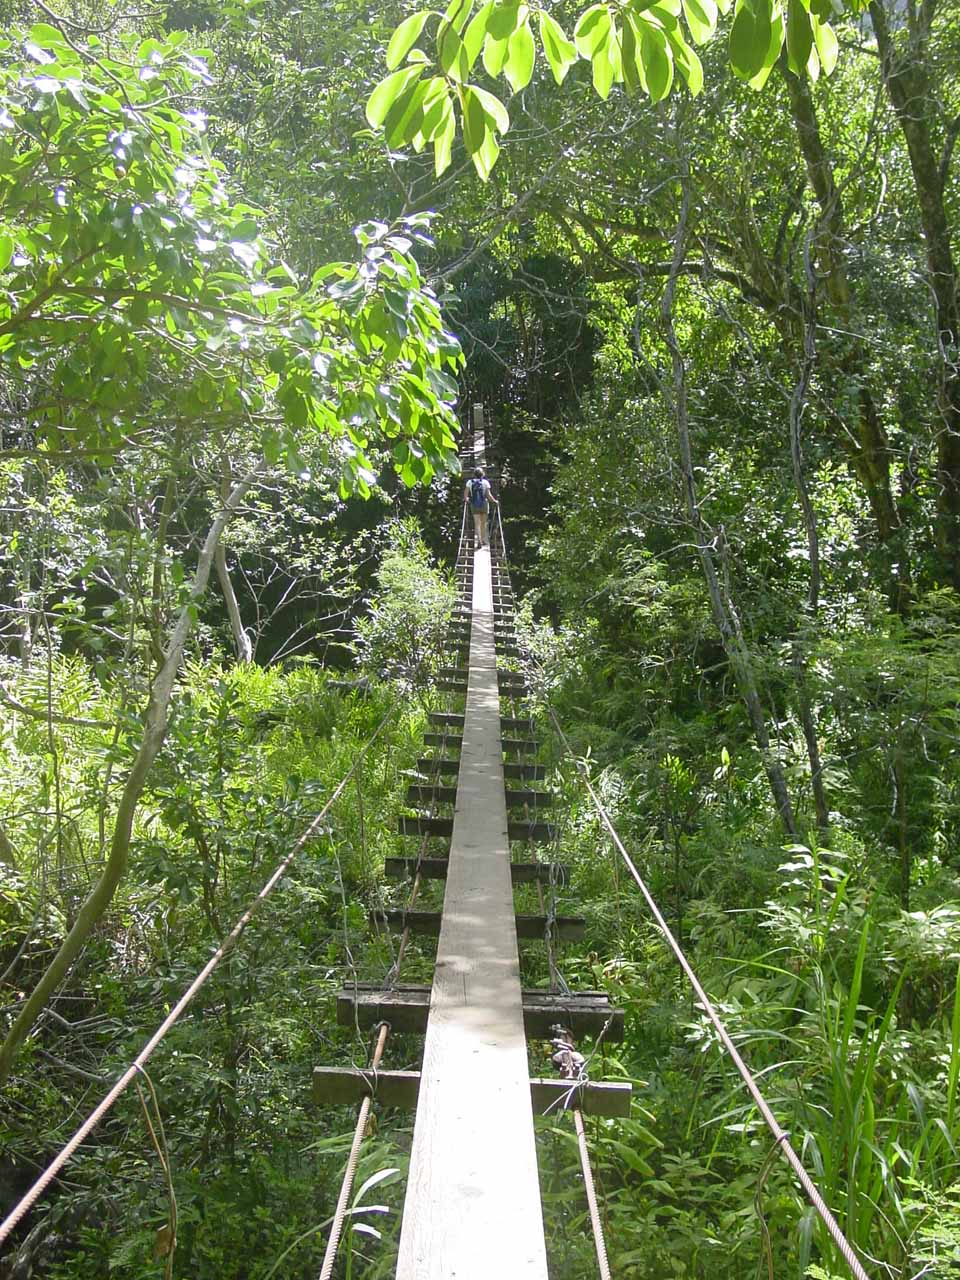 The second and much longer swinging bridge